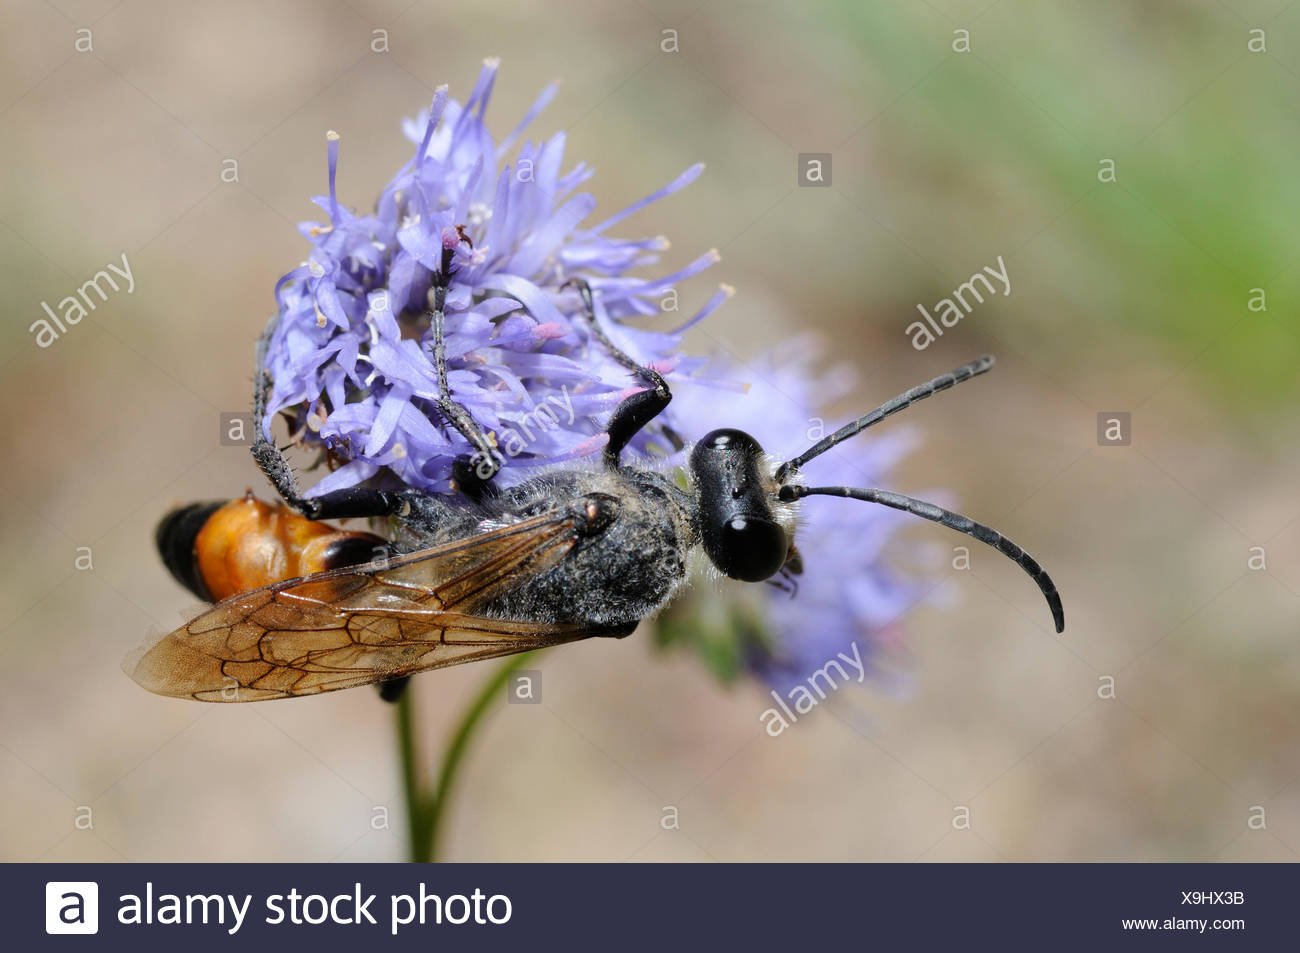 Digger Wasp on Sheep's-bit flower - Aqutaine France - Stock Image